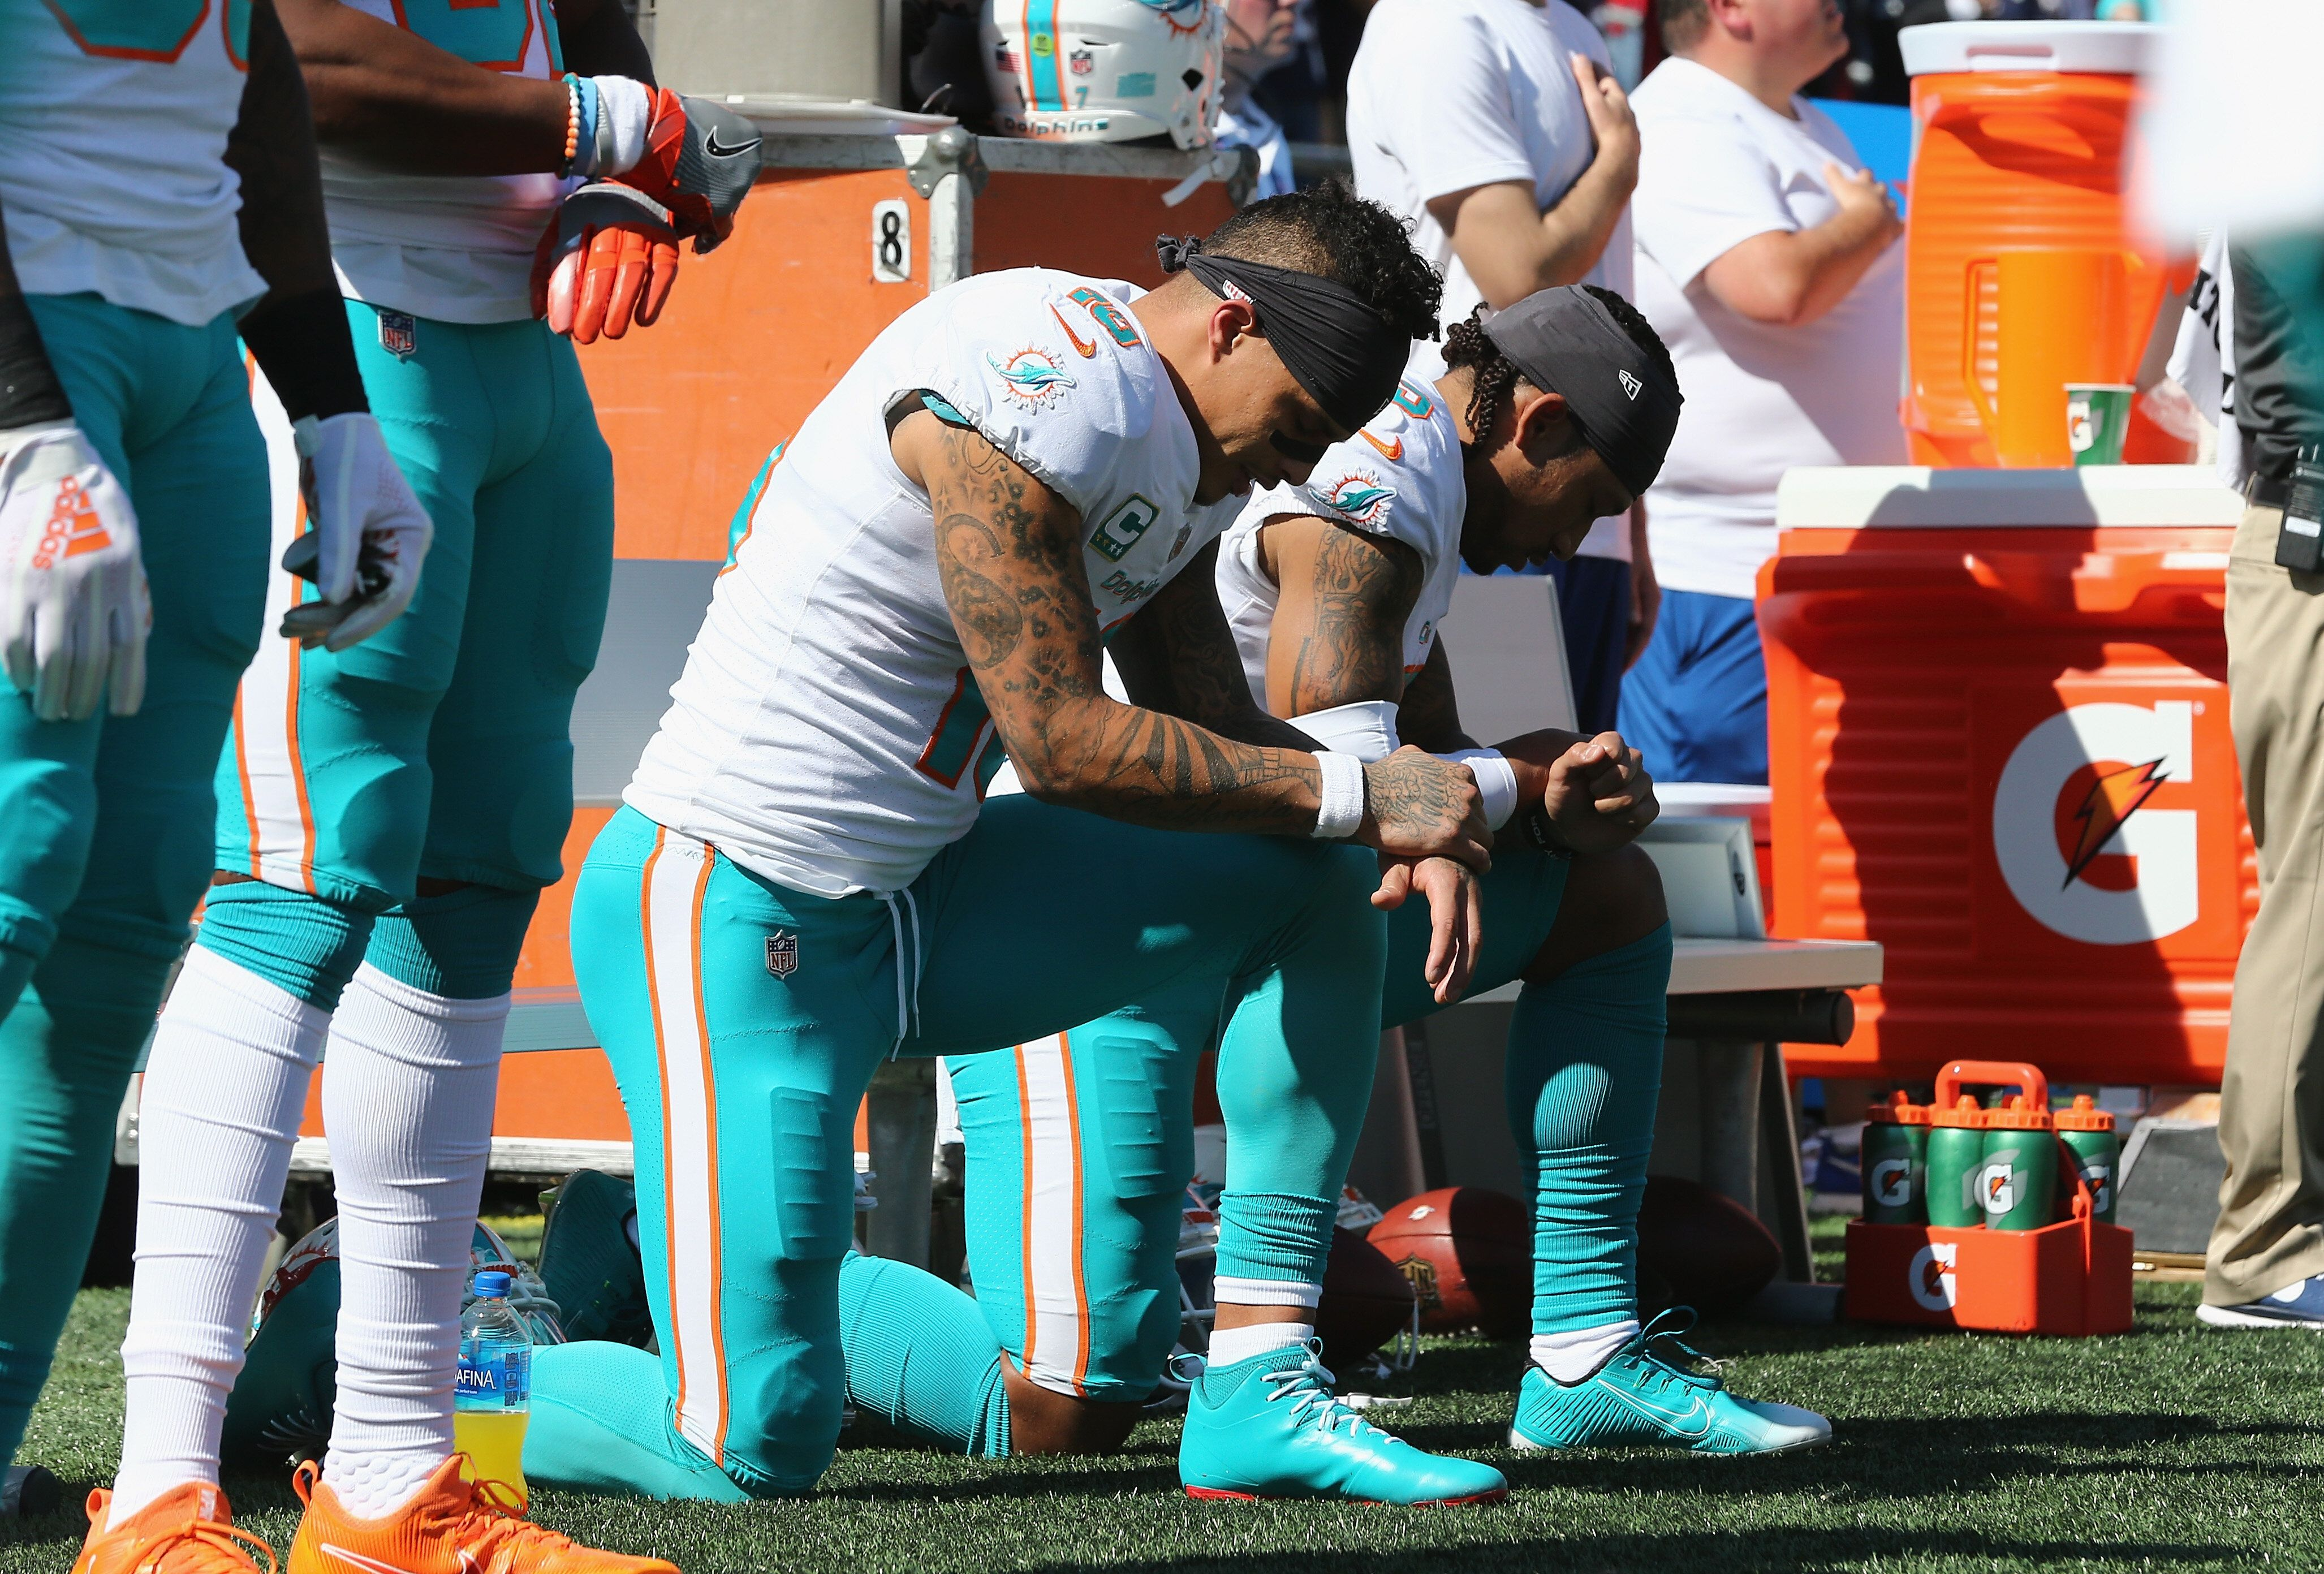 Kenny Stills and Albert Wilson of the Miami Dolphins kneel during the national anthem at Gillette Stadium in Foxborough, Mass